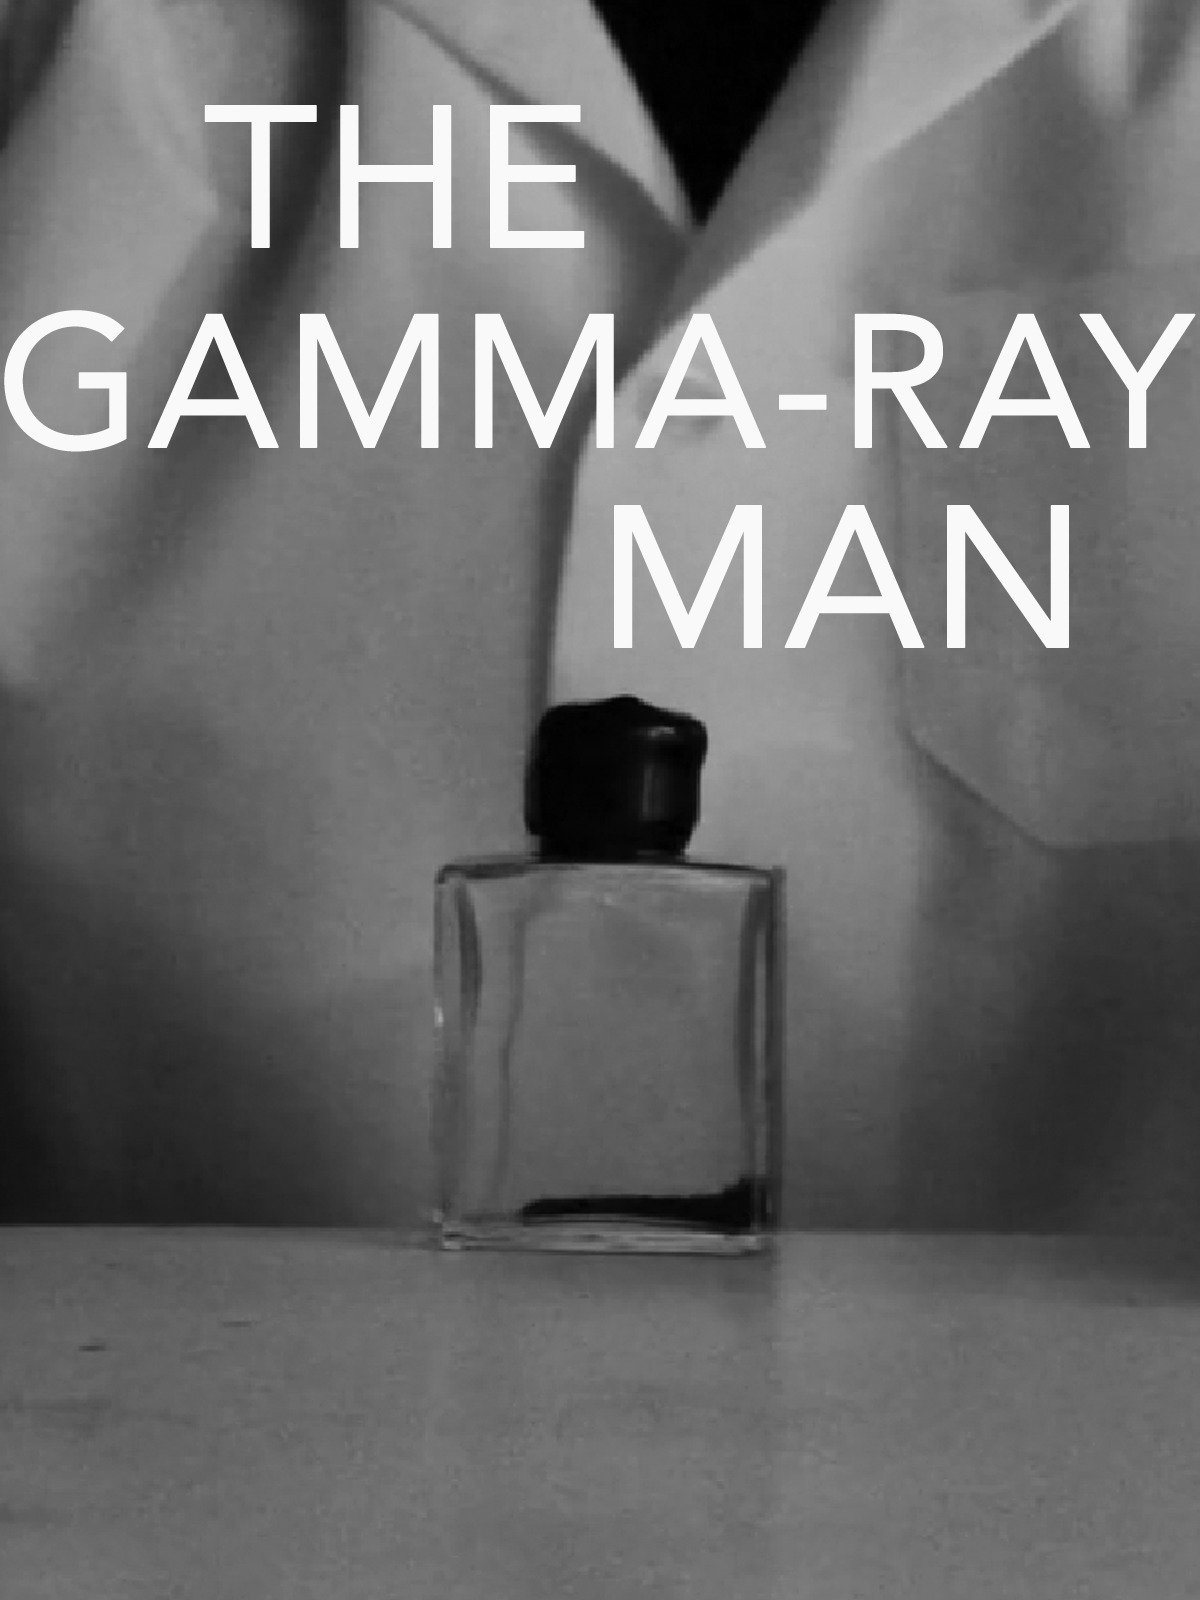 The Gamma-Ray Man